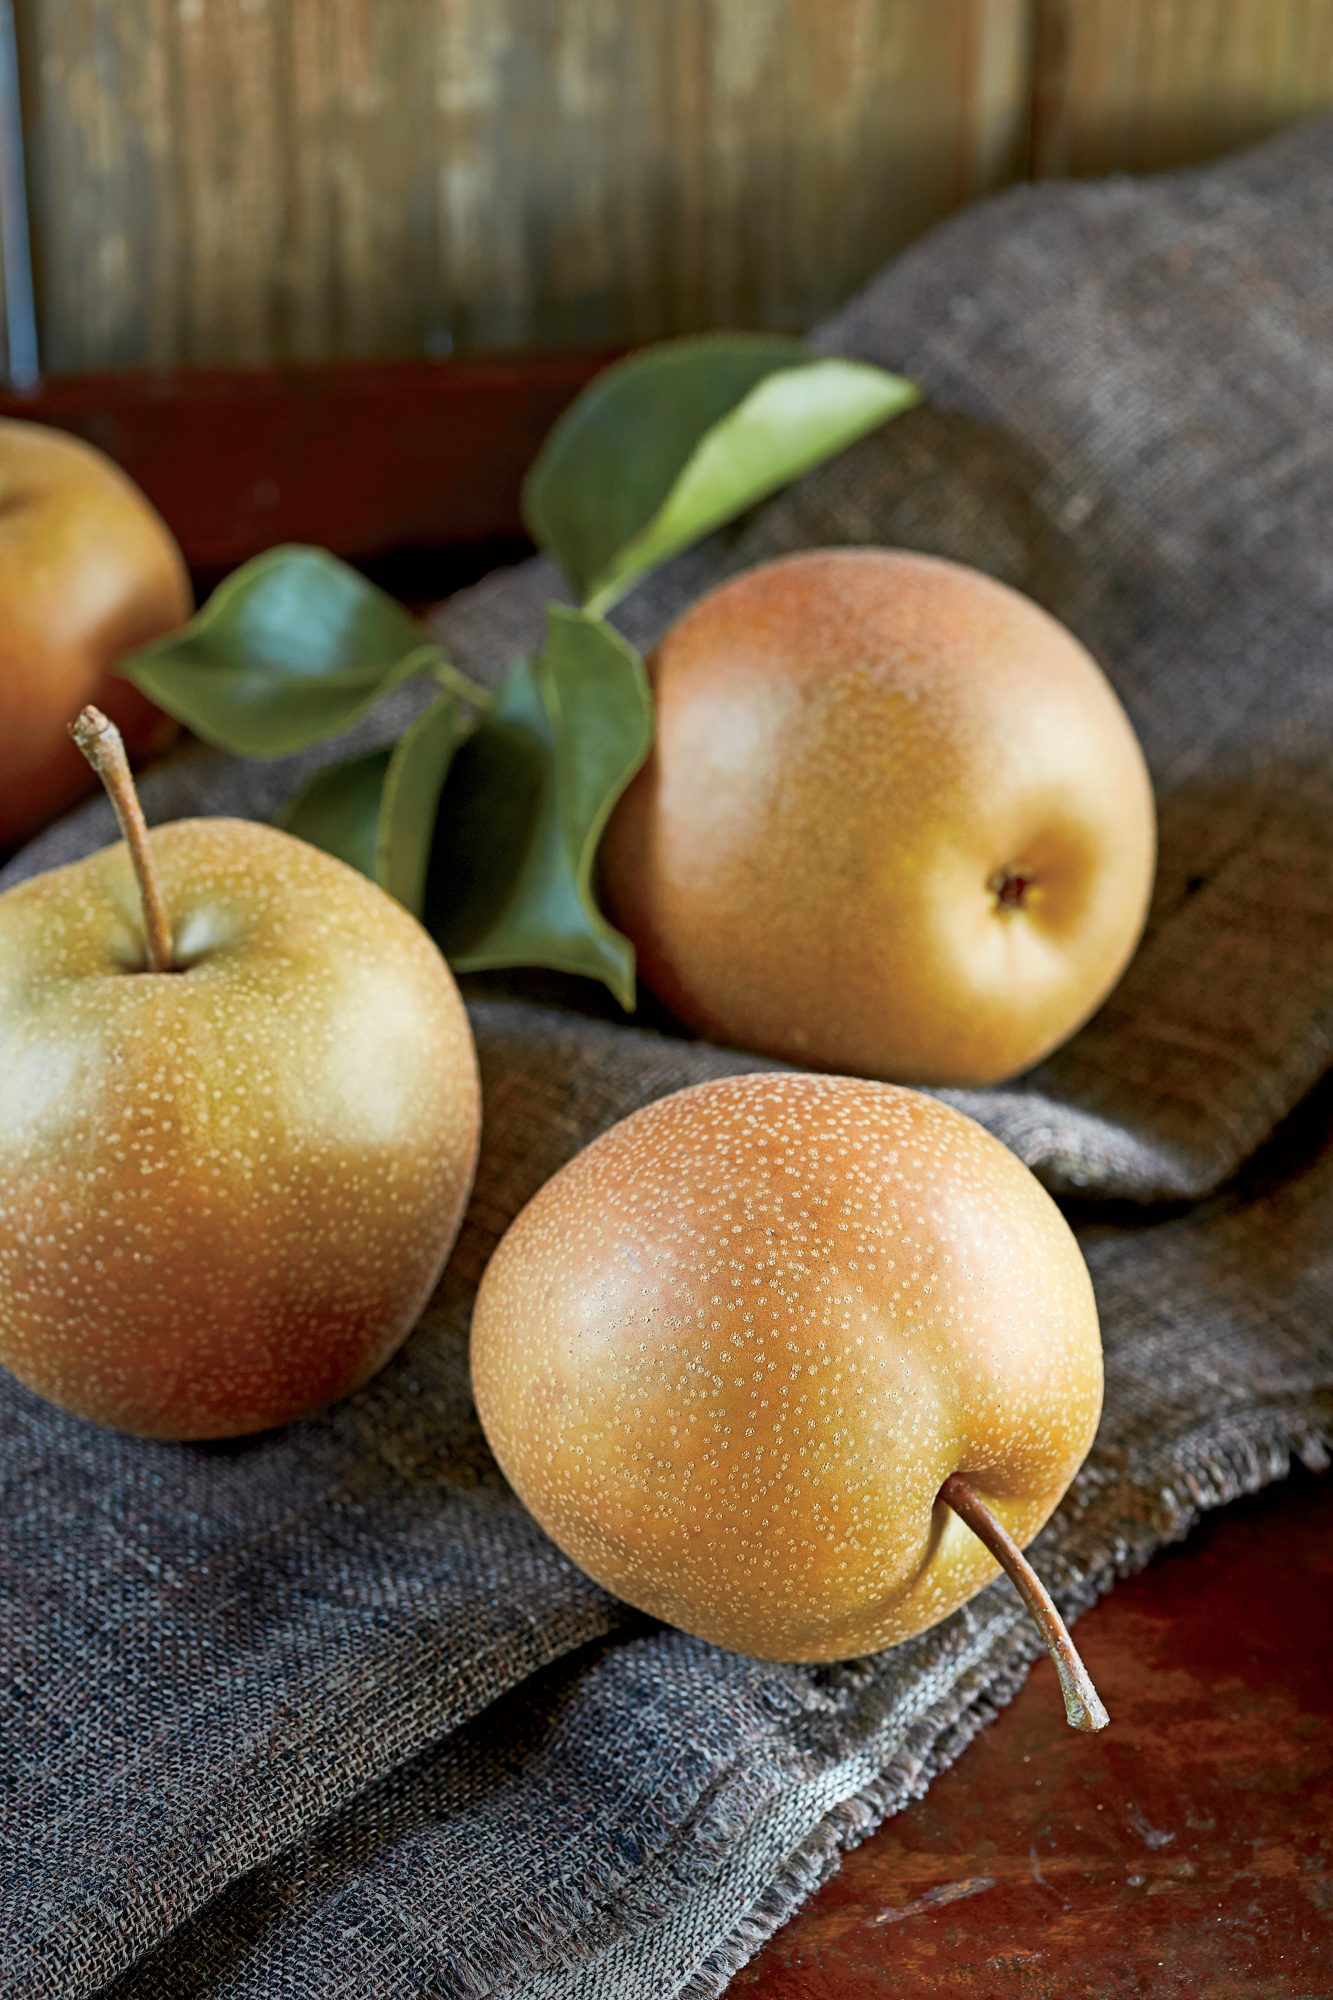 Shinko asian pear edible landscaping - Growing Asian Pears A Bounty Of Flavor